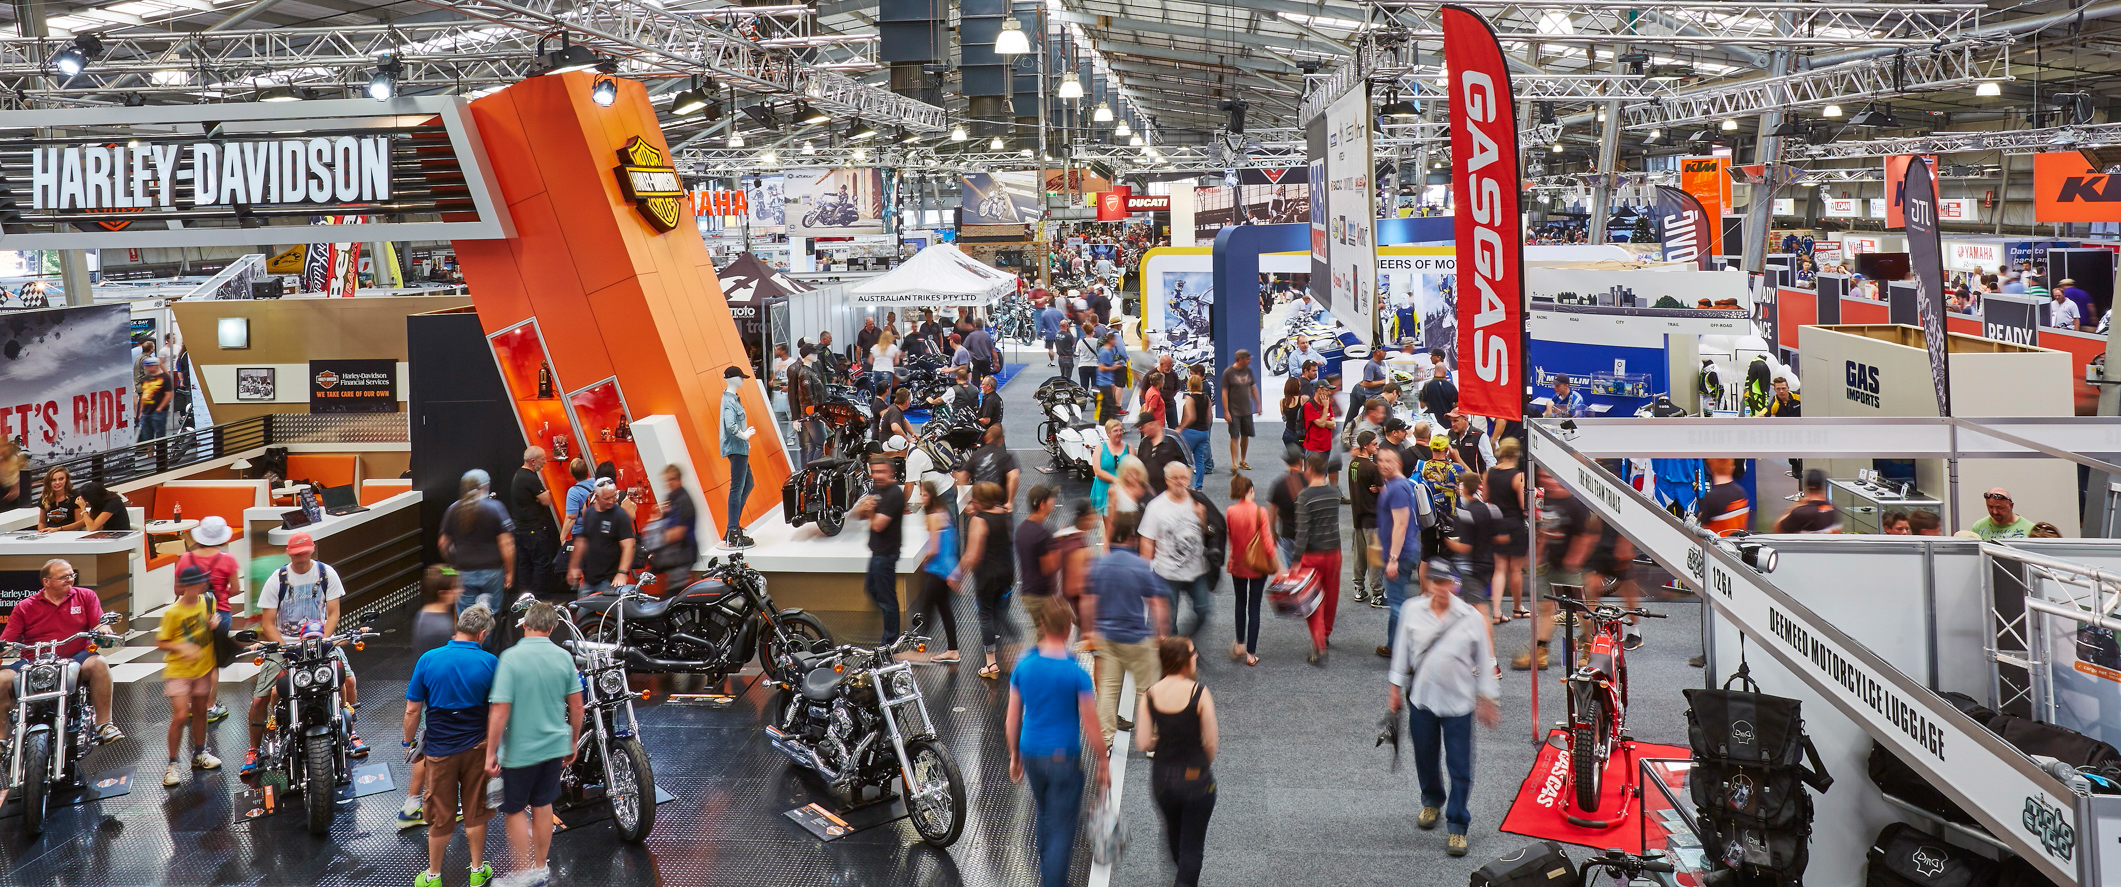 The Sydney Motorcycle Show kicks off on Friday November 24